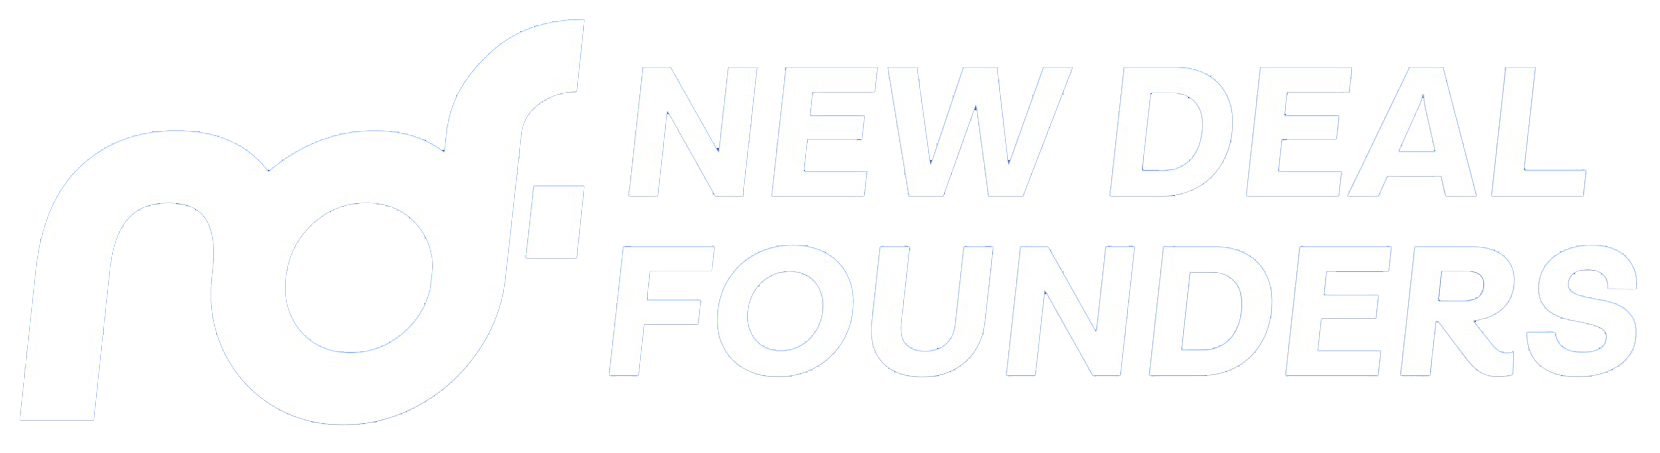 logo new deal founders